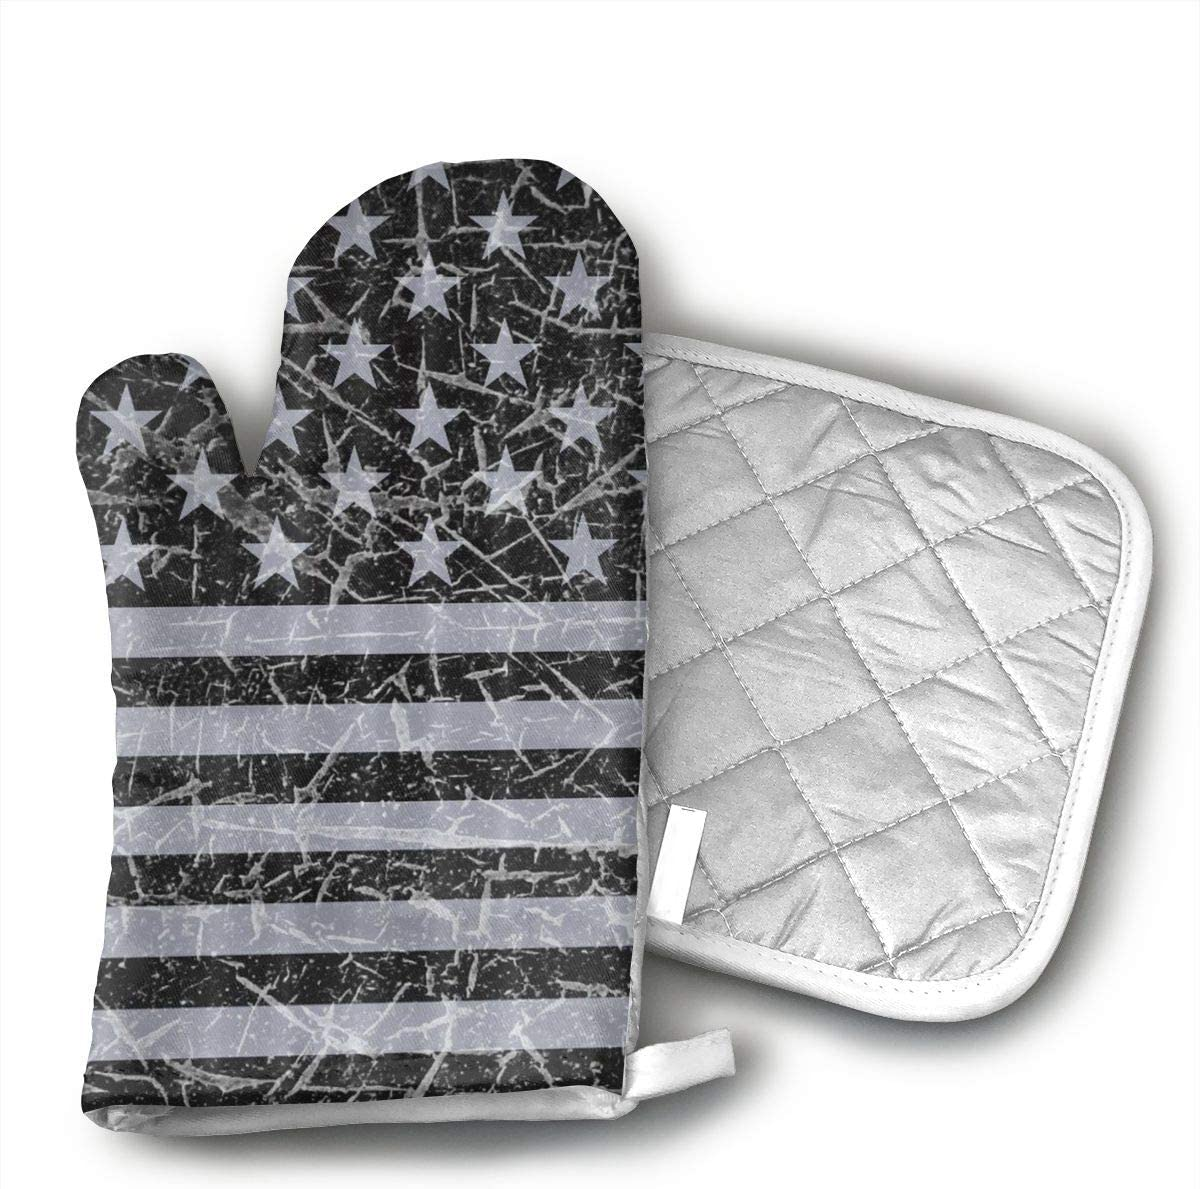 FGXQB Retro Distressed USA Flag Patriotic Oven Mitts with Quilted Cotton Lining - Heat Resistant Kitchen Gloves, Matching Mini Oven Mitts